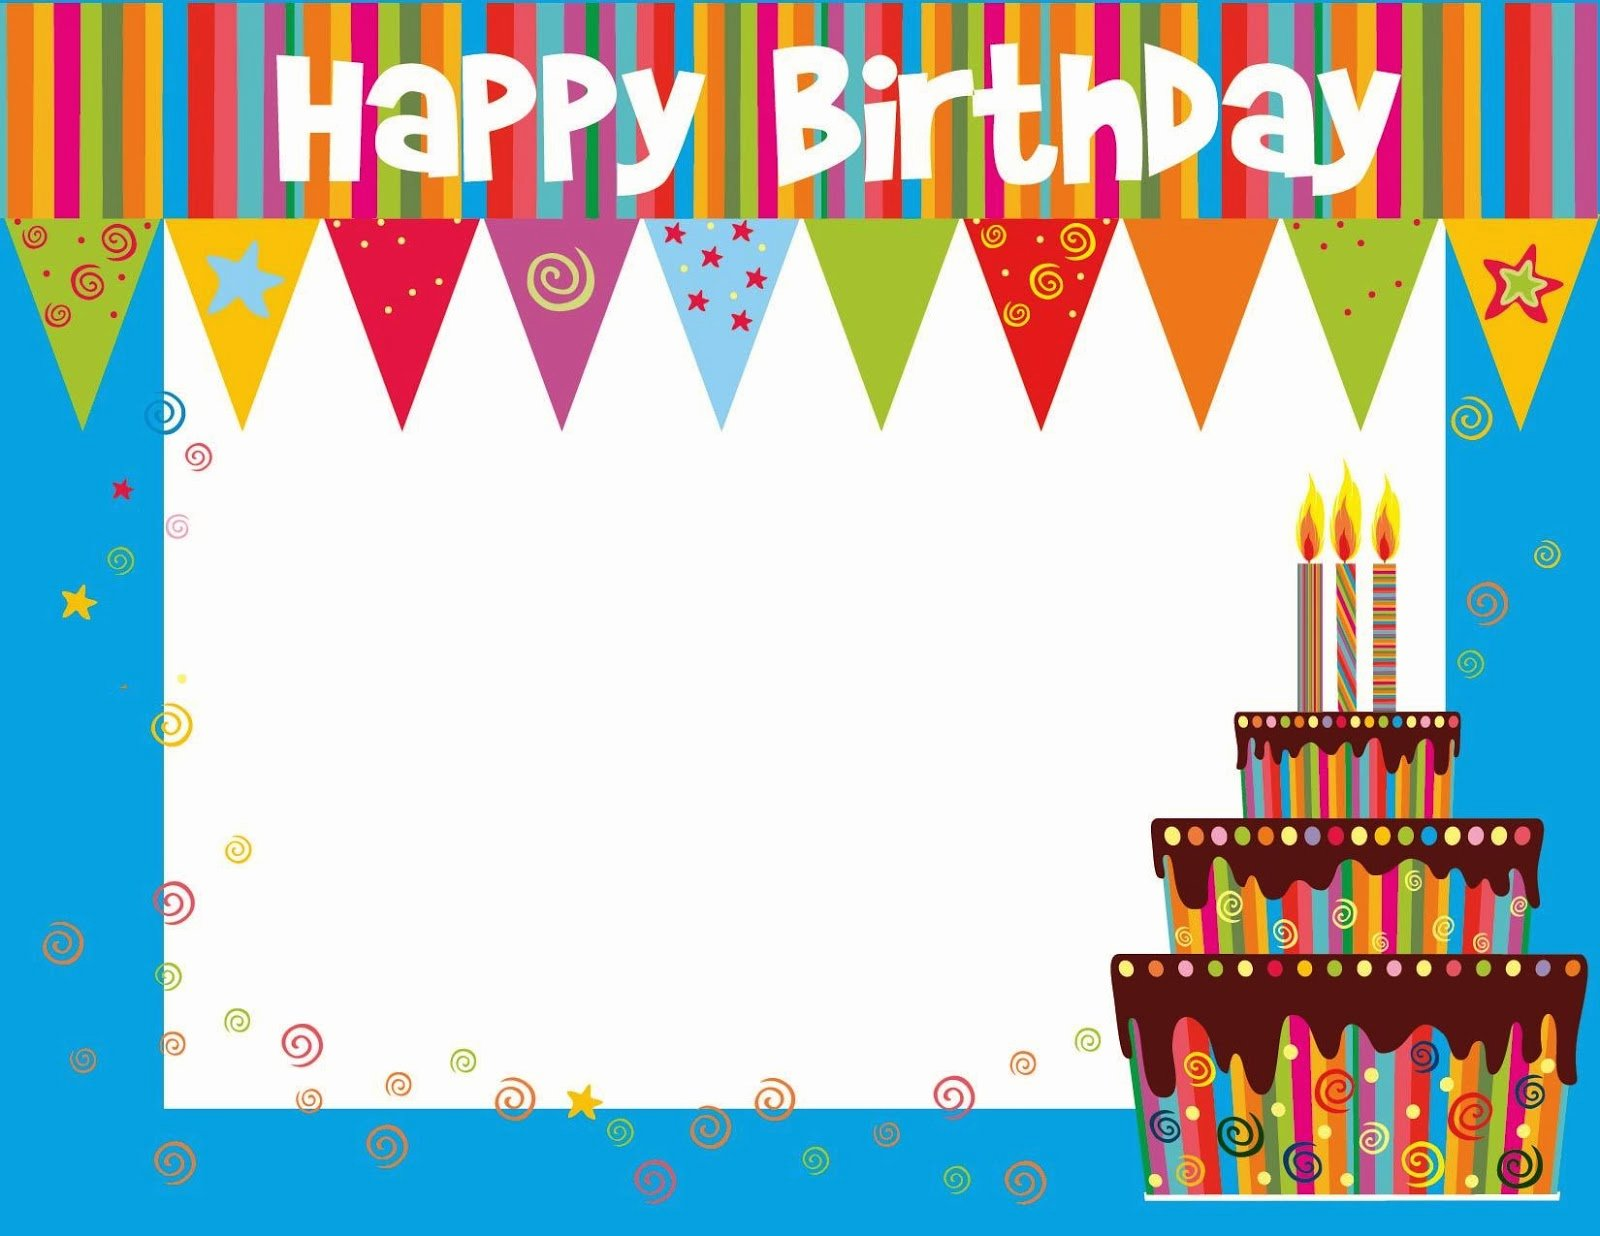 Happy Birthday Template Word Elegant Free Printable Birthday Cards Ideas Greeting Card Template